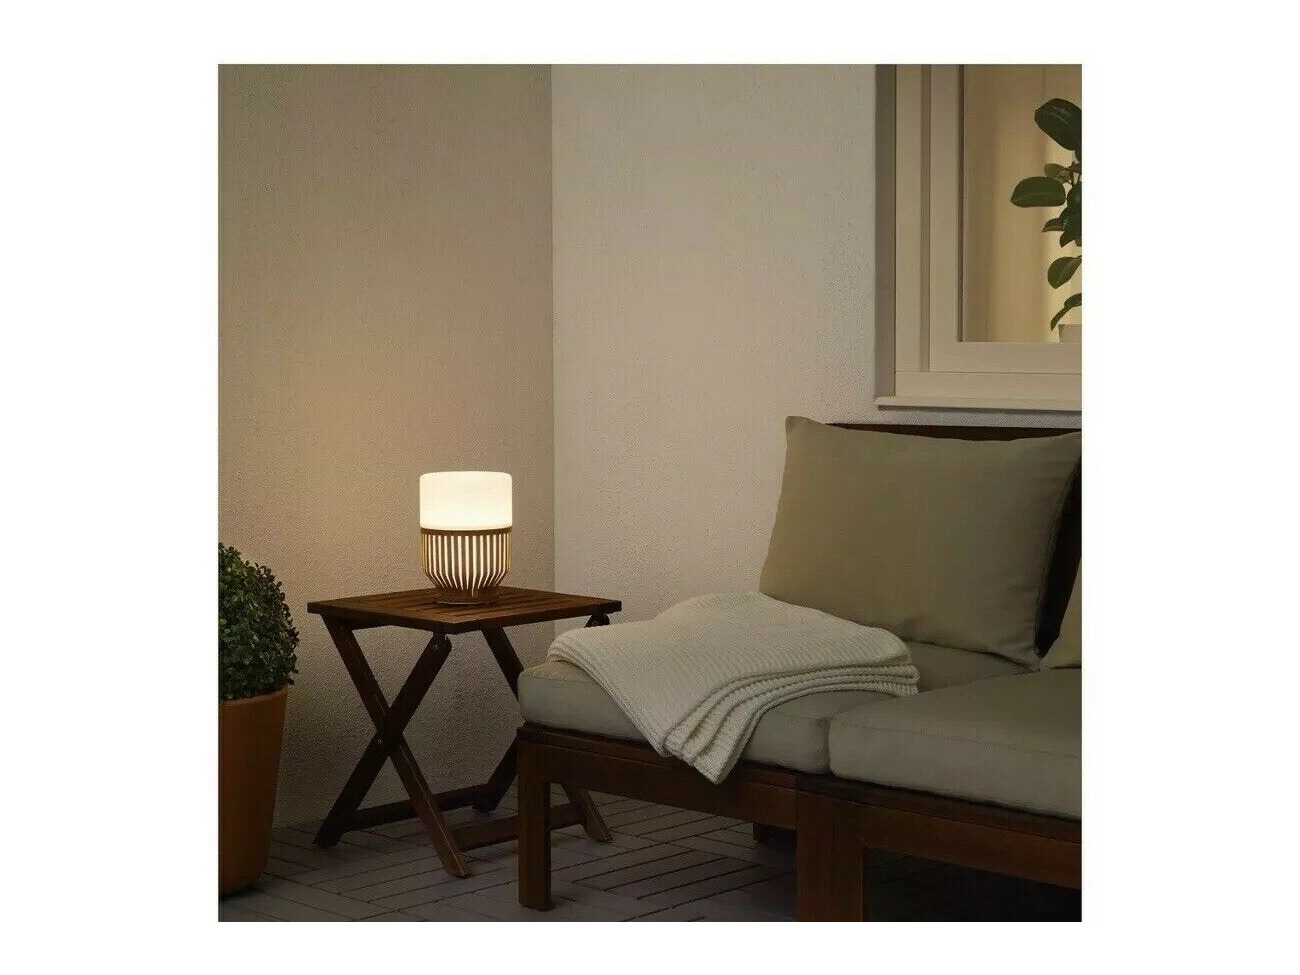 IKEA MULLBACKA Built-in LED Table Lamp Rechargeable Indoor/Outdoor Bamboo  Base